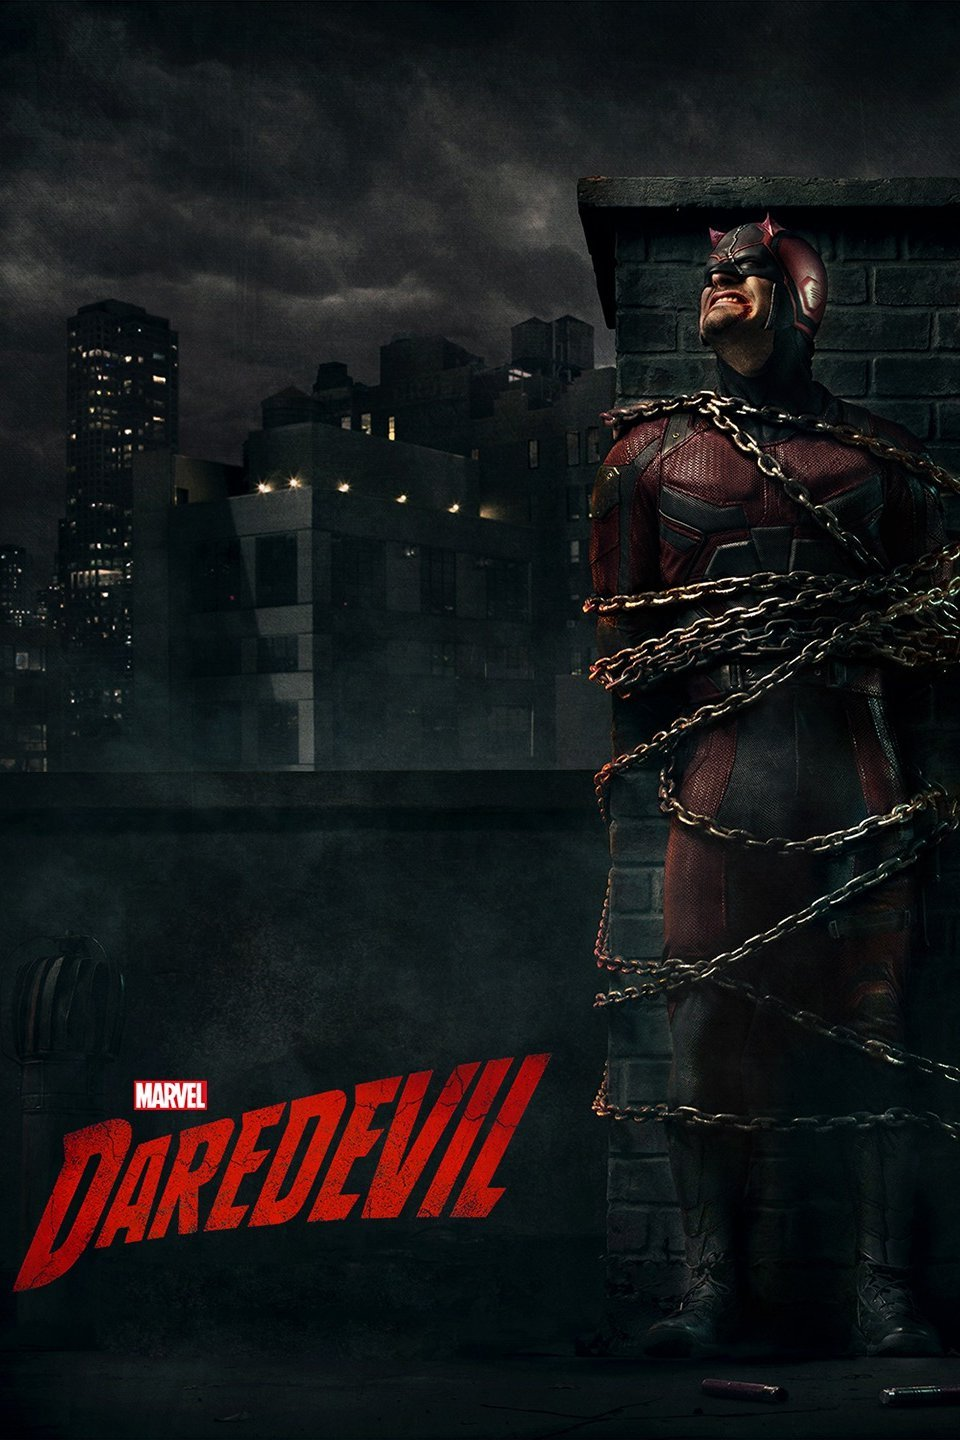 Daredevil Season 1 Download Complete 720p HEVC WEBRip